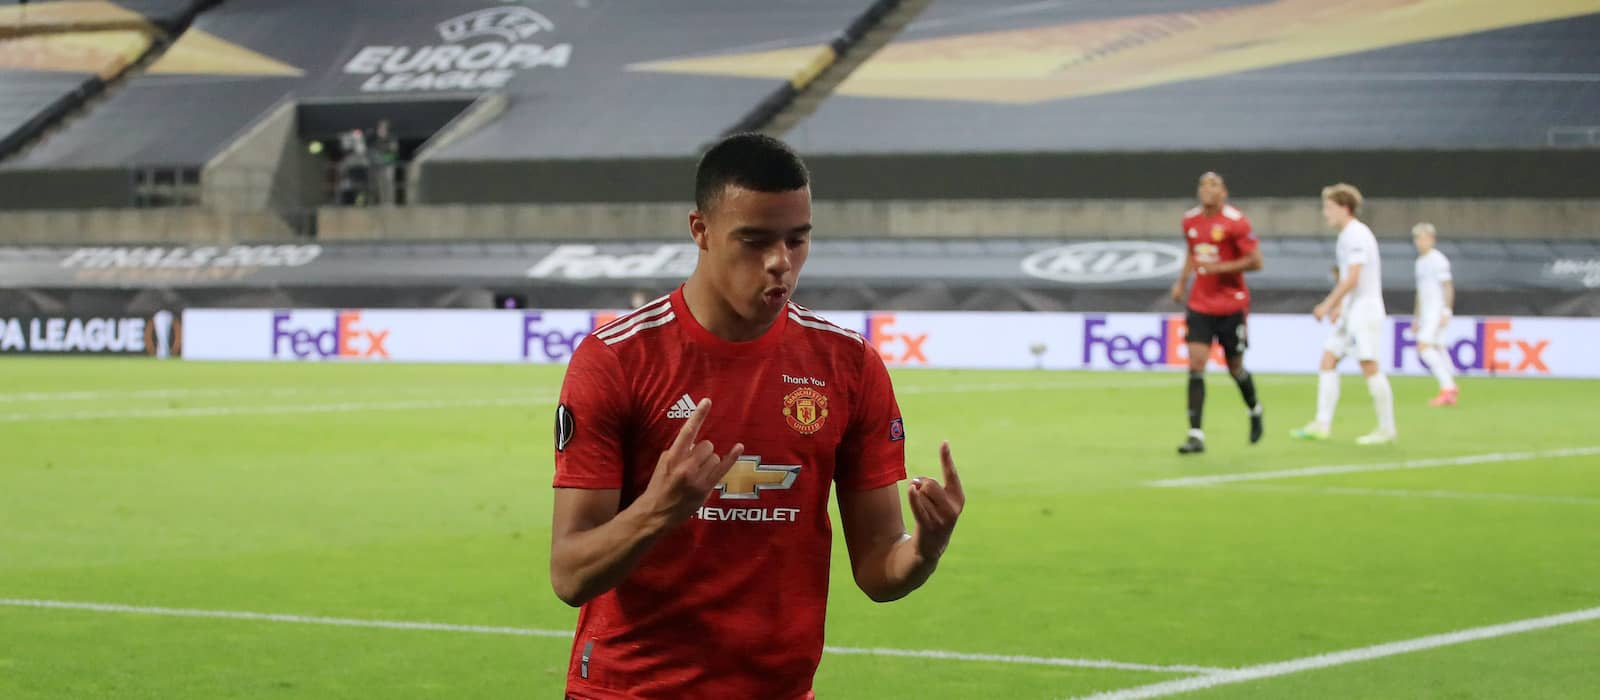 Mason Greenwood deadlier in front of goal than previously thought